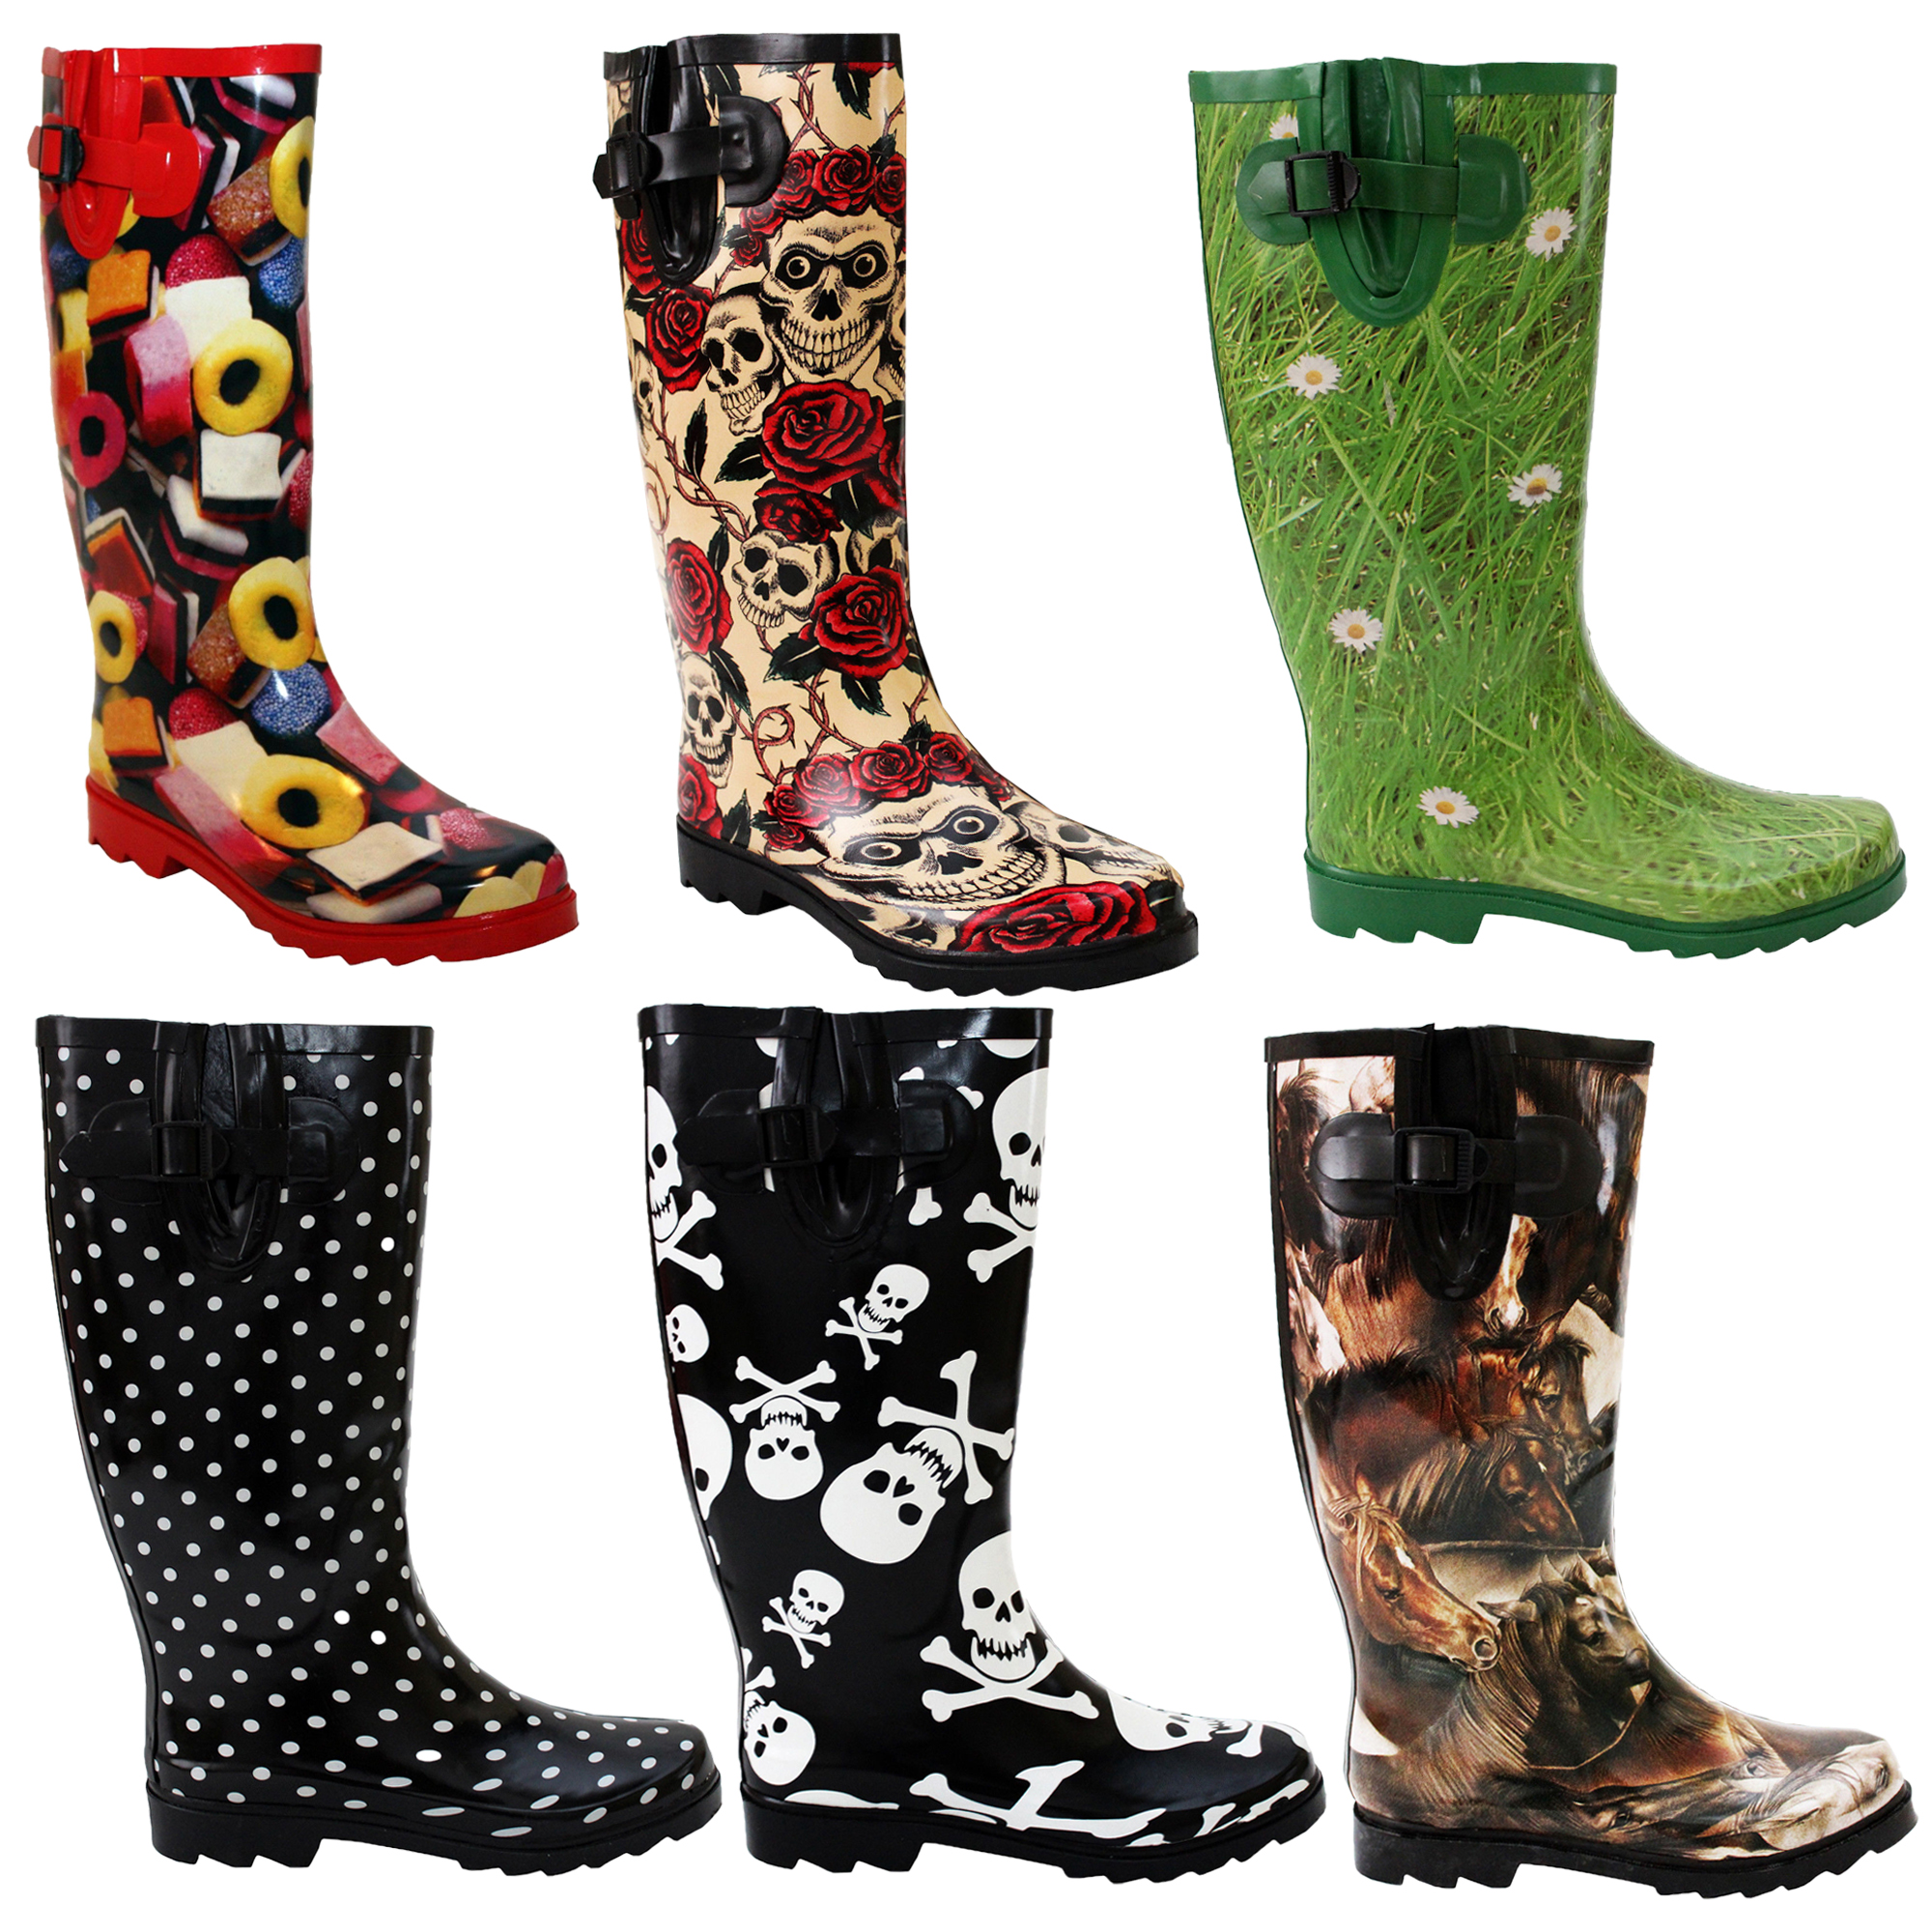 Ladies Boots Womens Snow Wellies Wellington Wide Calf ...